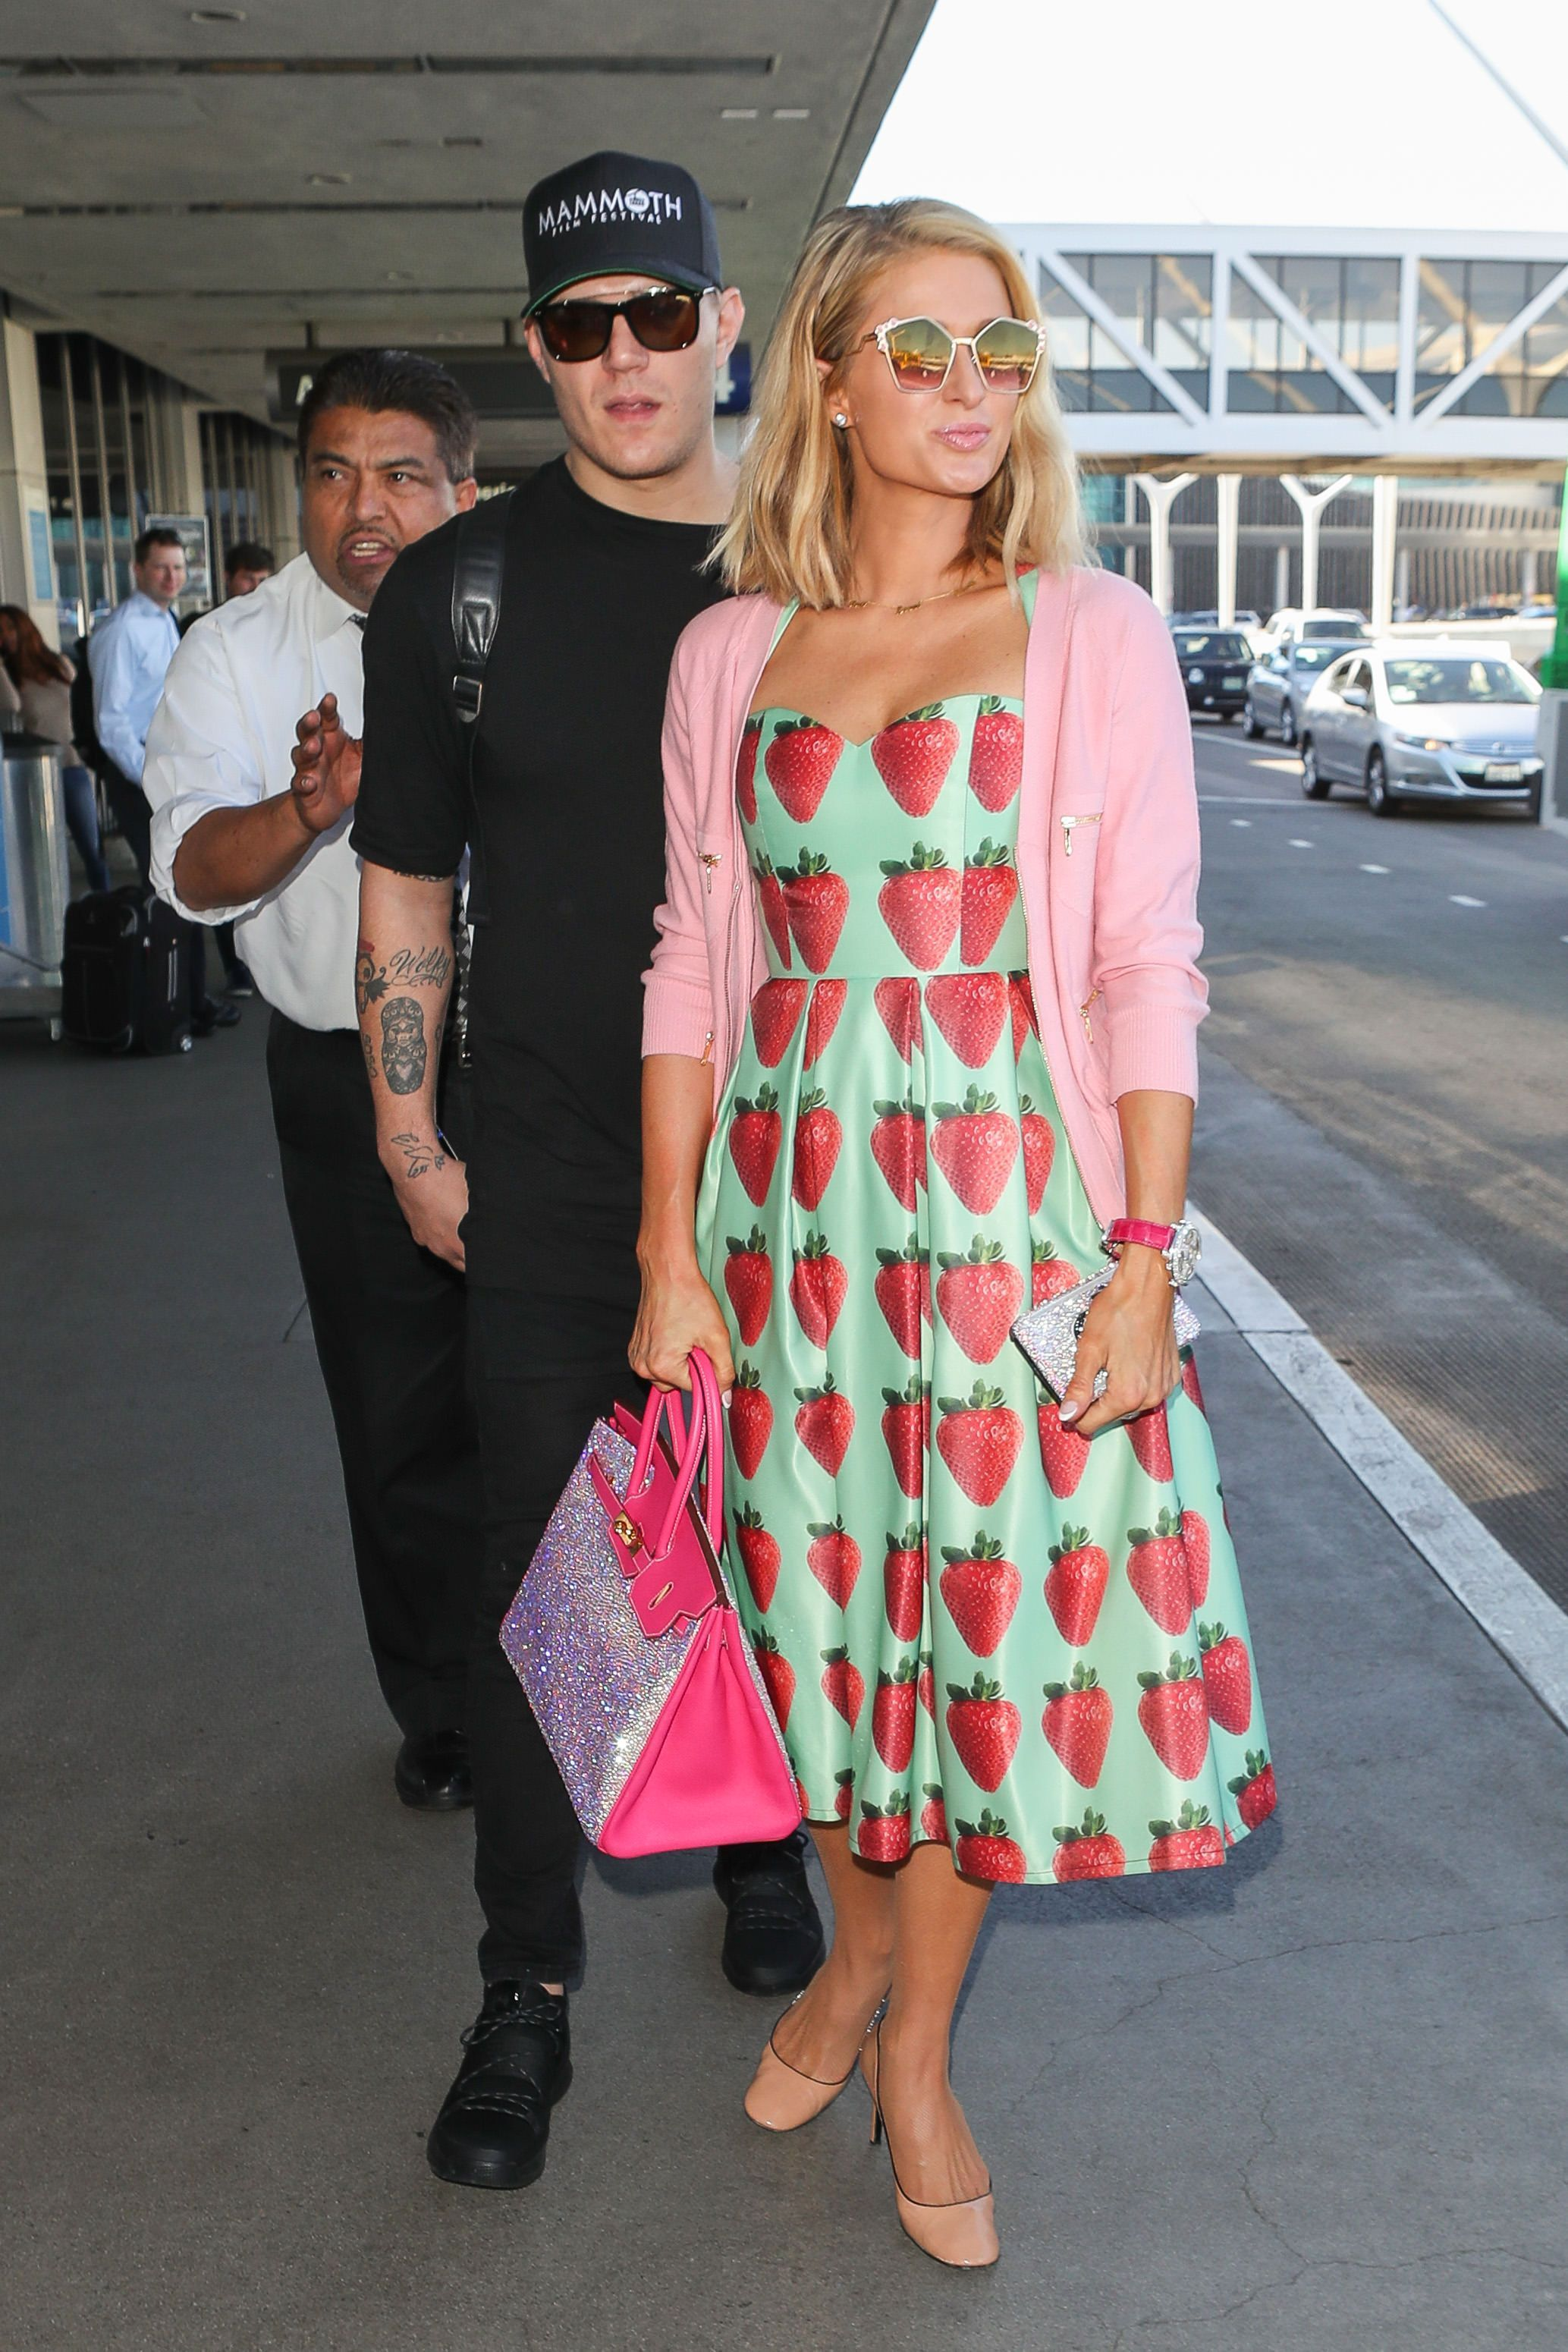 Paris Hilton At LAX Airport 2 8 18 Paris Hilton HQ